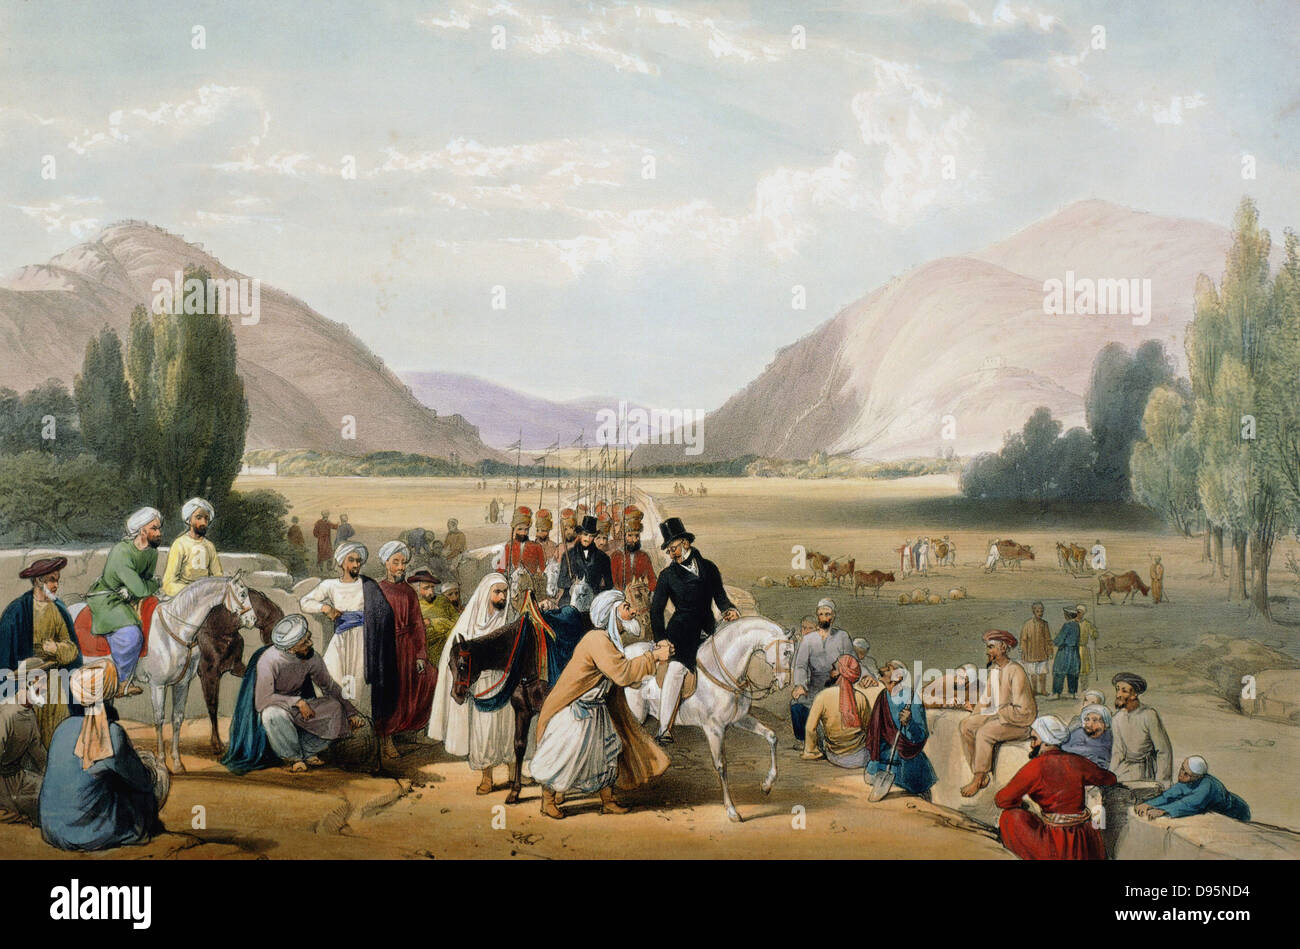 First Anglo-Afghan War 1838-42: Dost Mohammed Khan surrendering to William MacNaghten (1793-1841) taking his morning - Stock Image